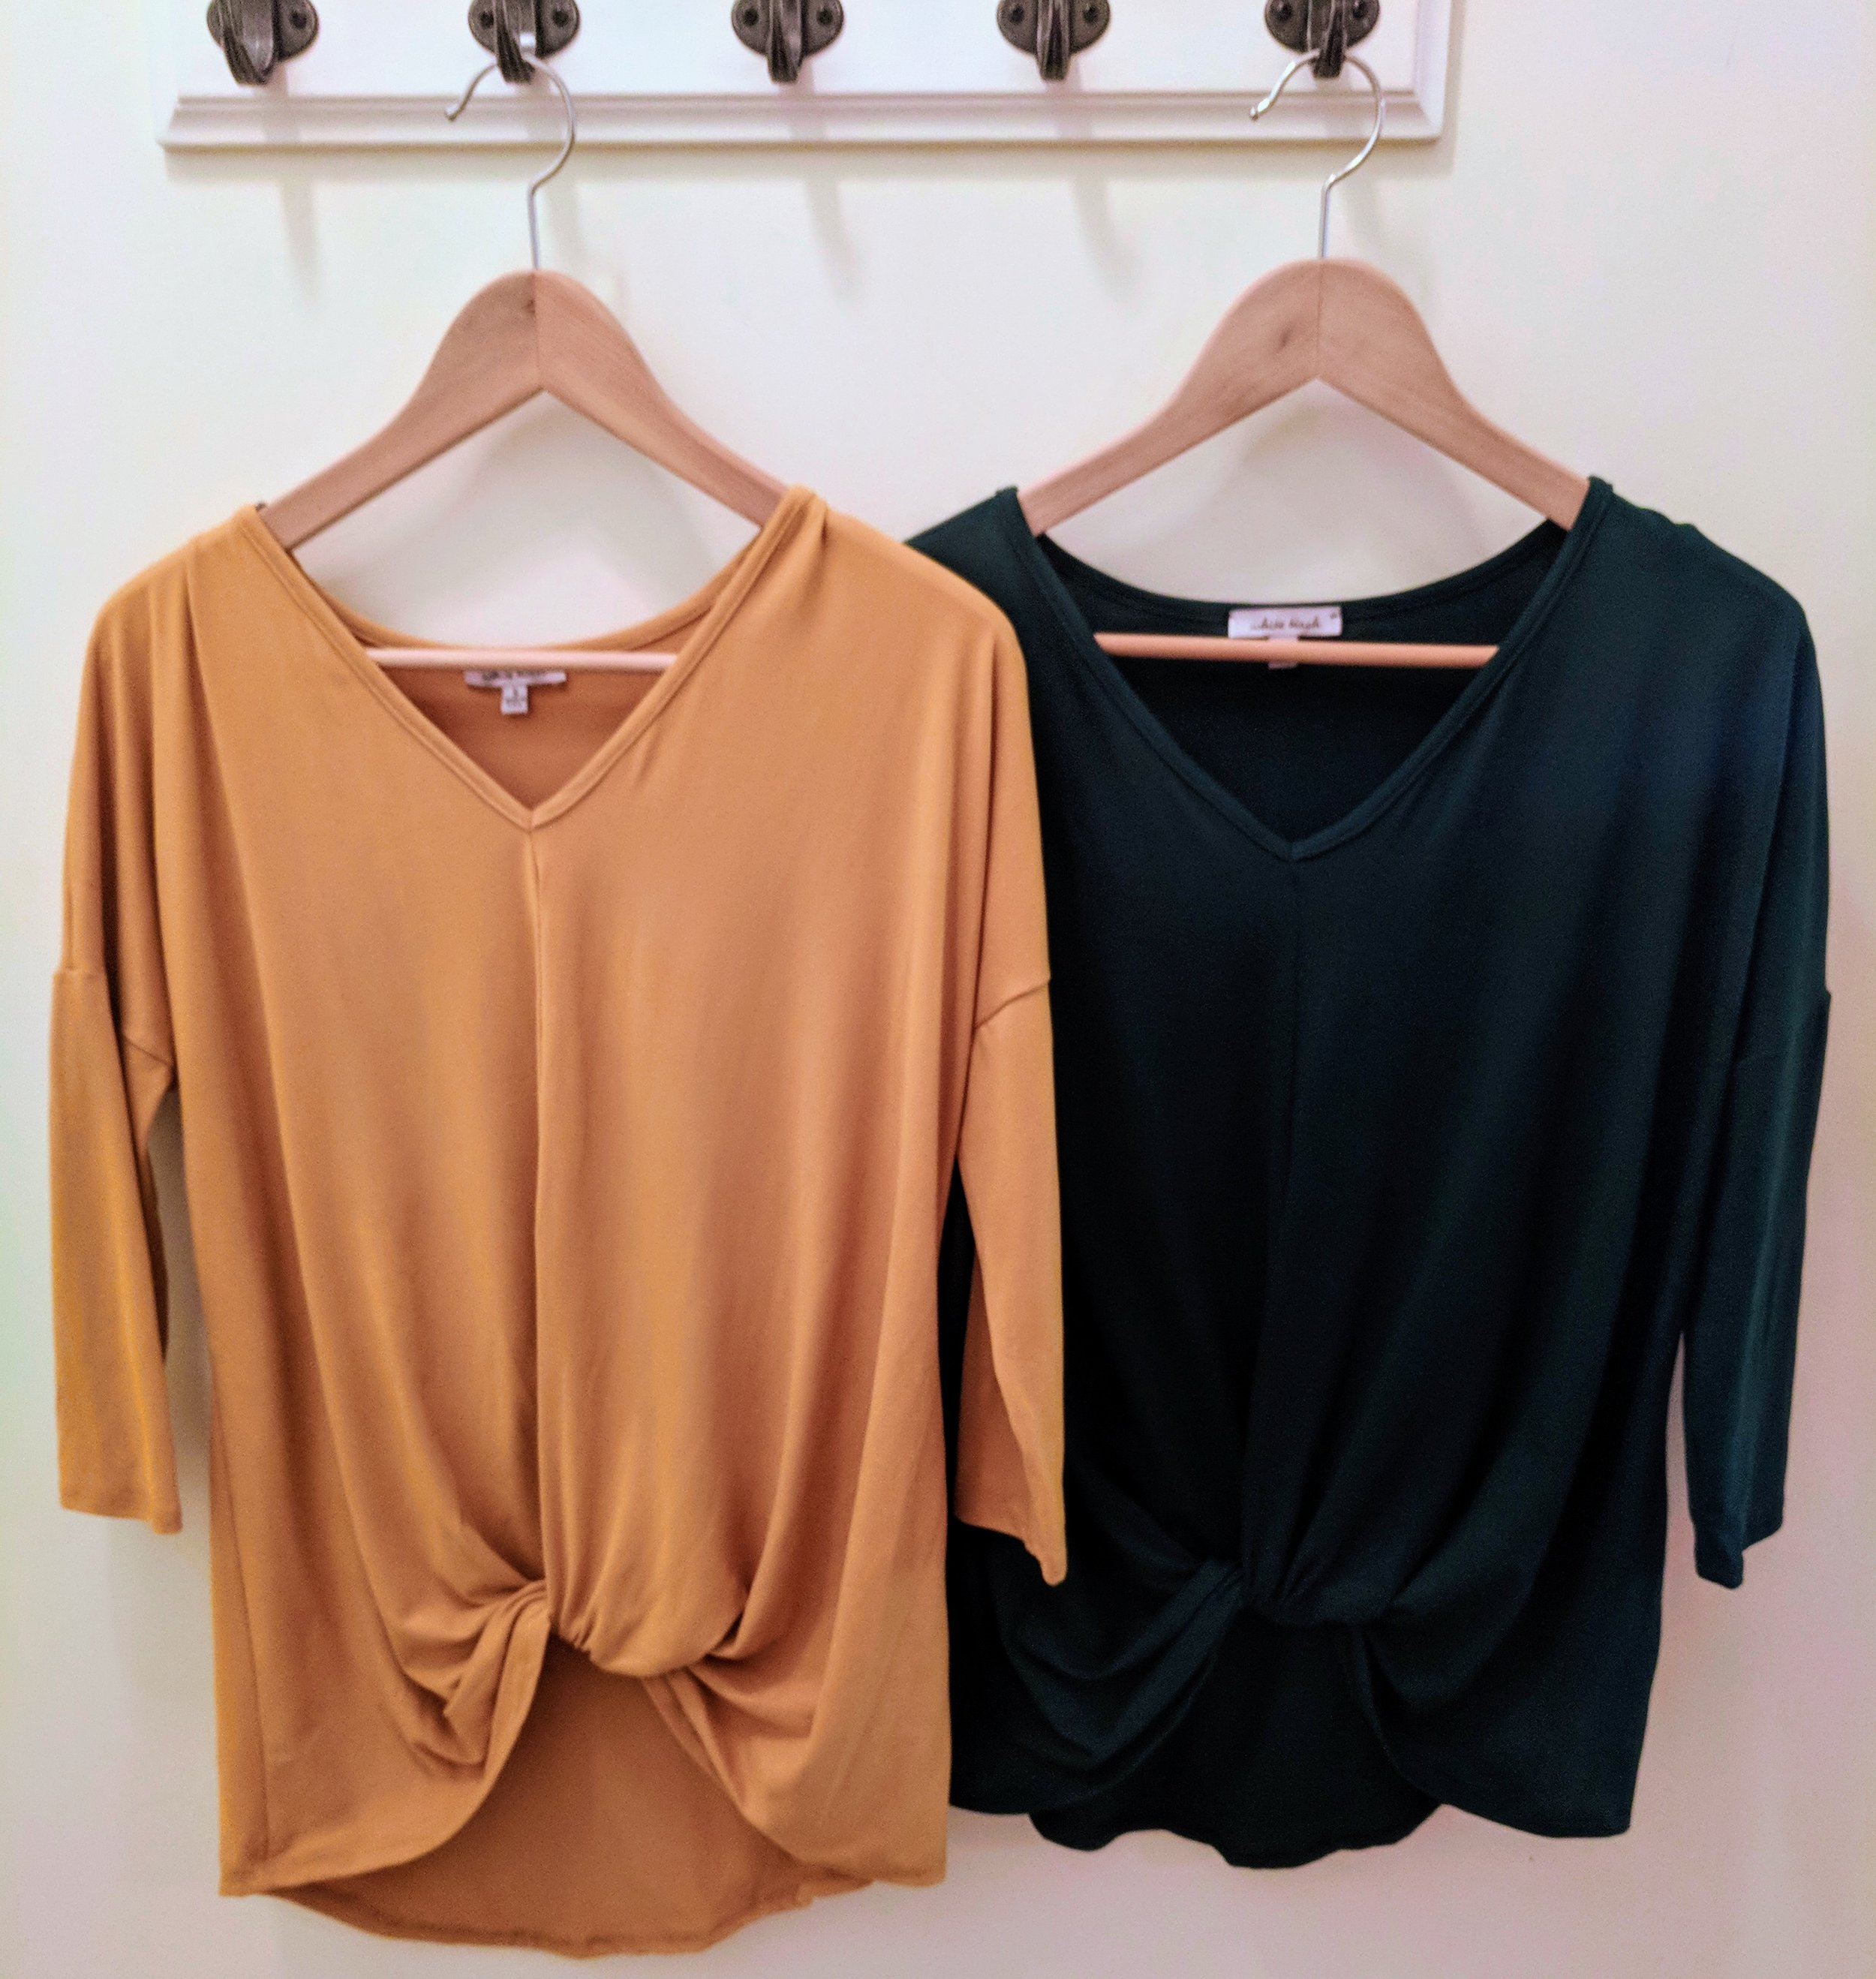 Mustard and Black super soft knot top with 3/4 sleeve and v-neck.